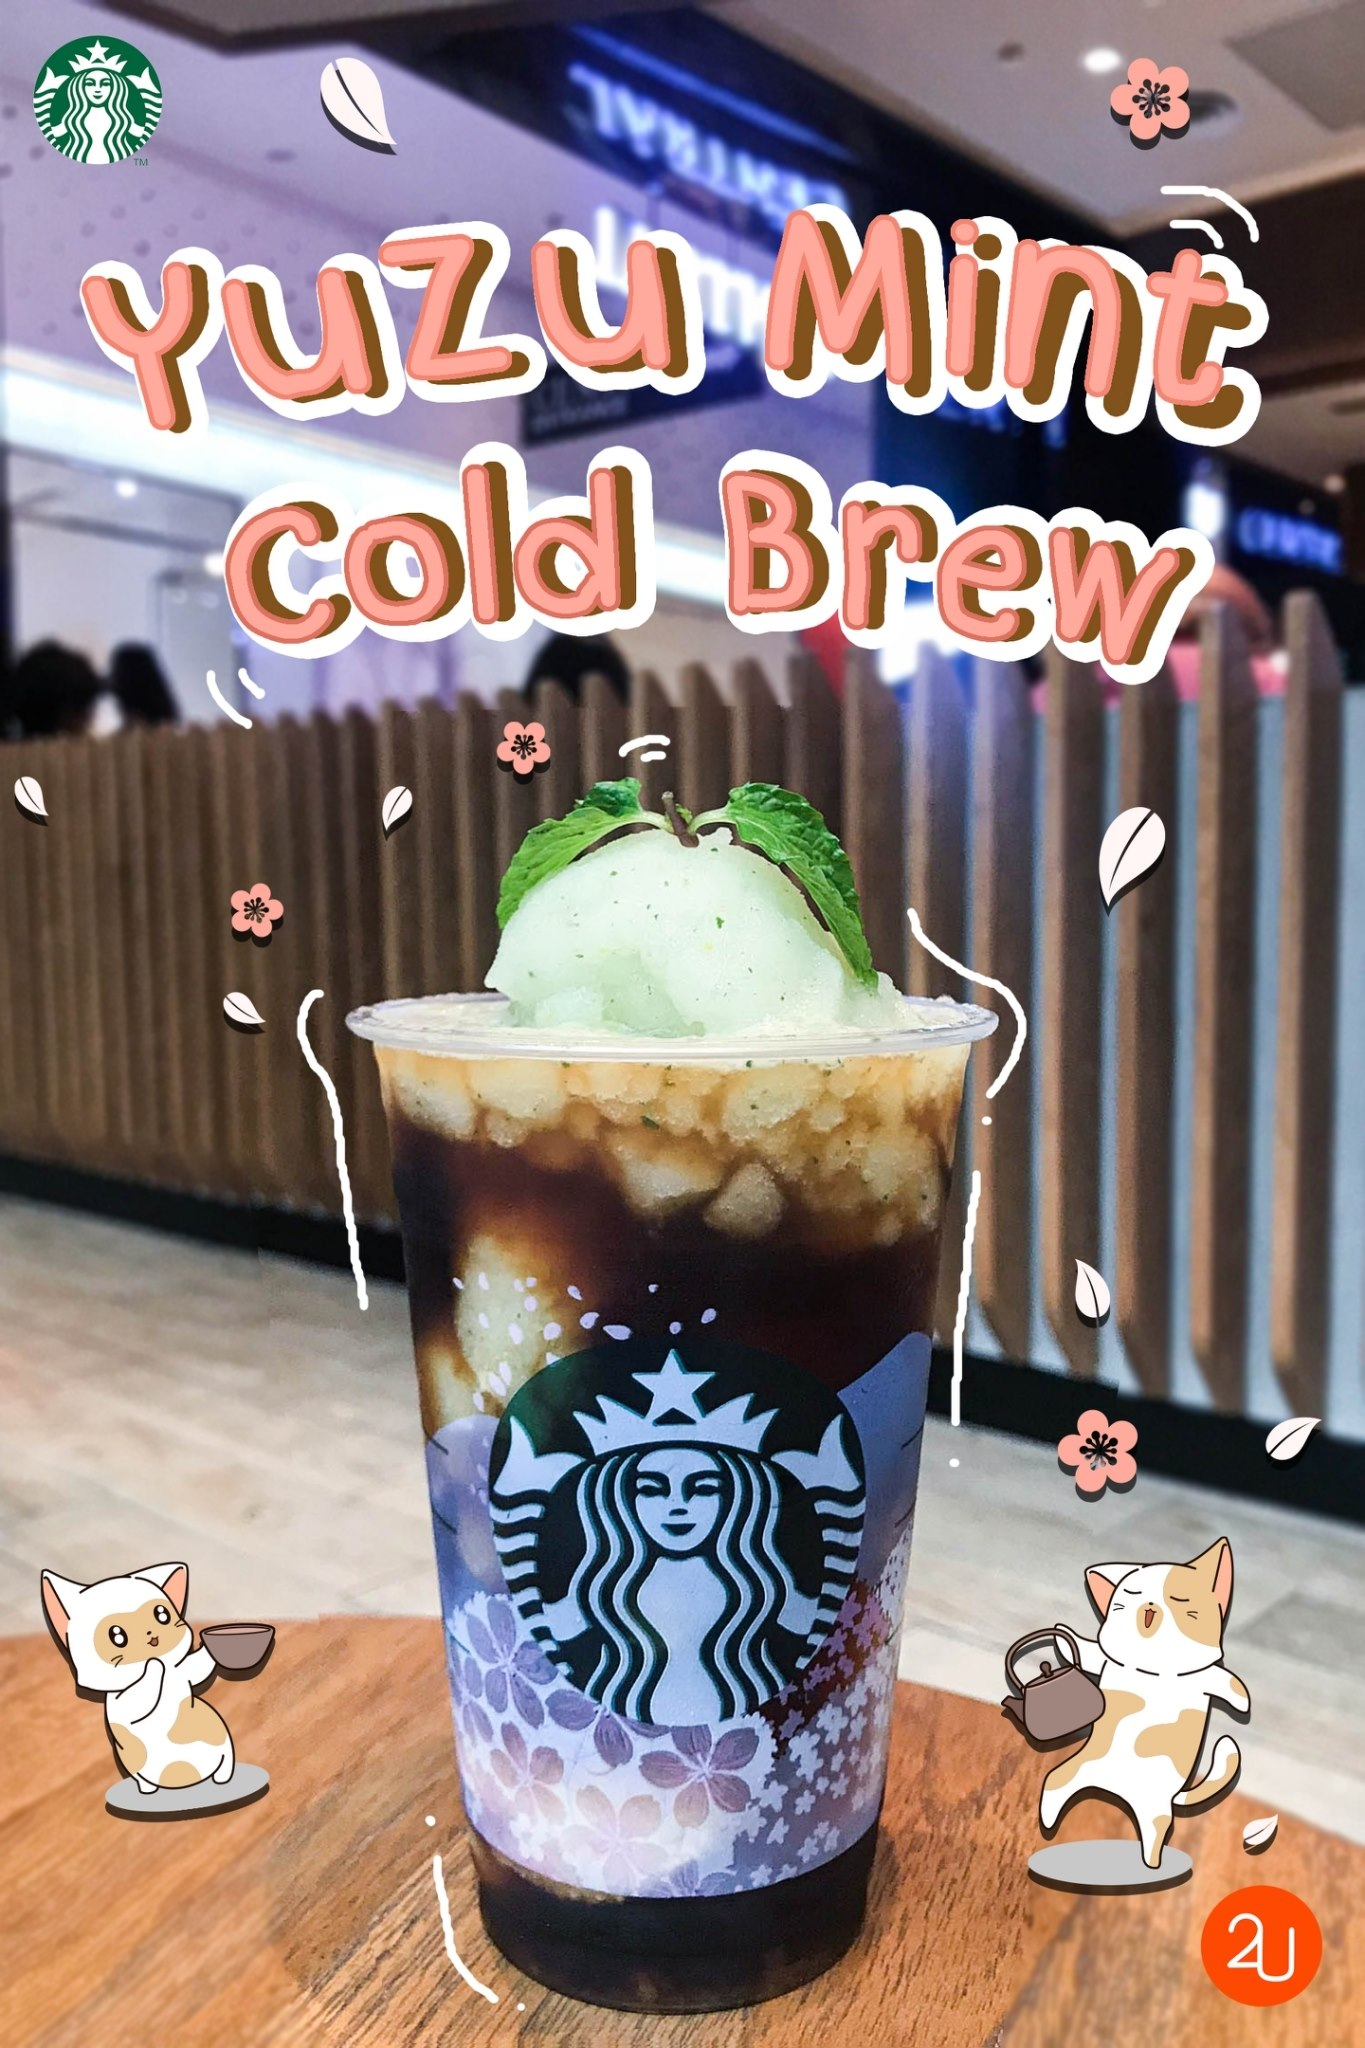 yuzu mint cold brew by starbucks